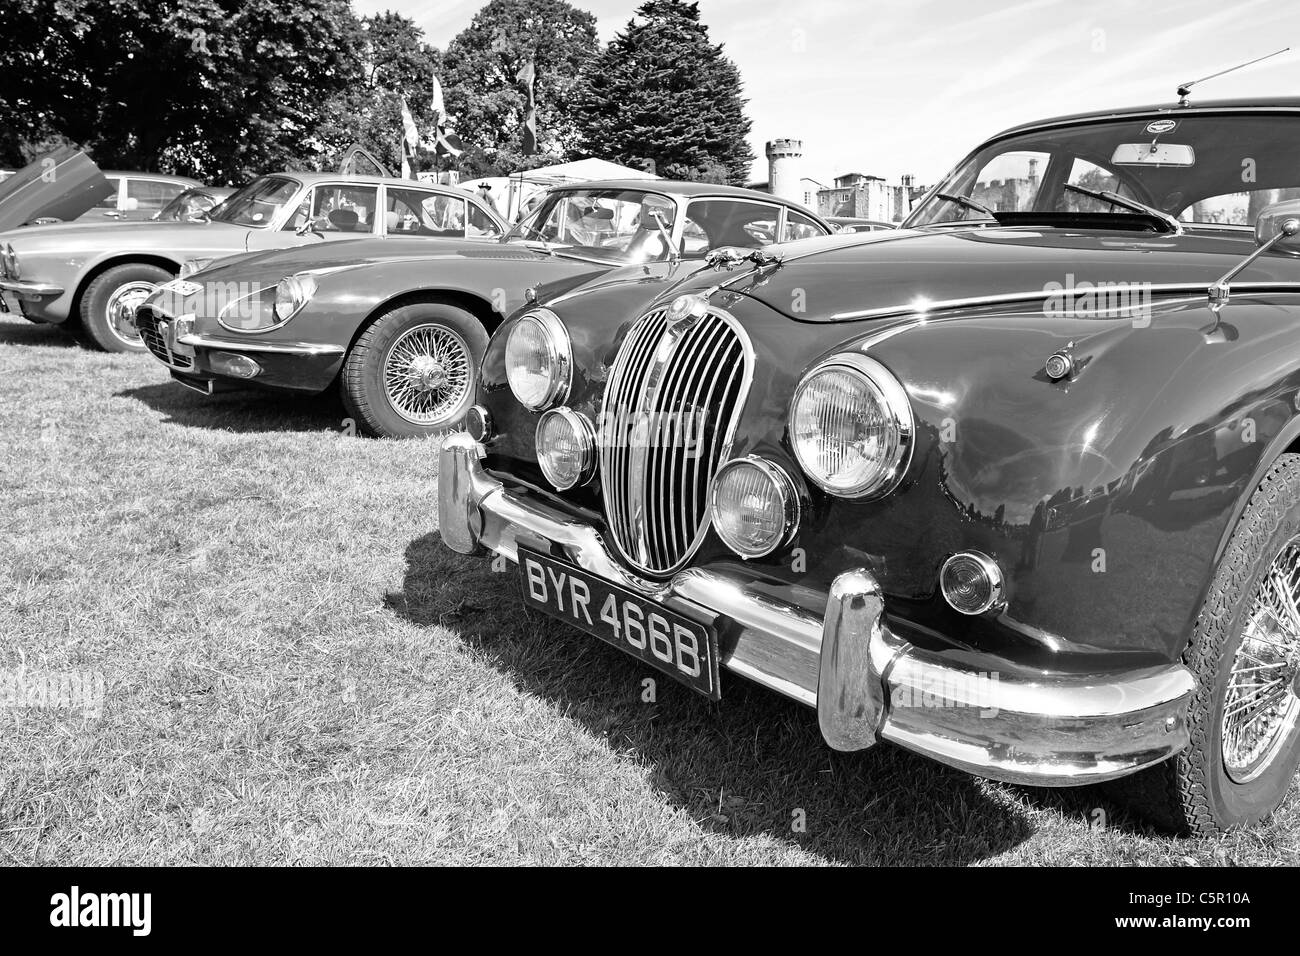 A black and white study of a row of classic jaguar saloon and sports cars Stock Photo